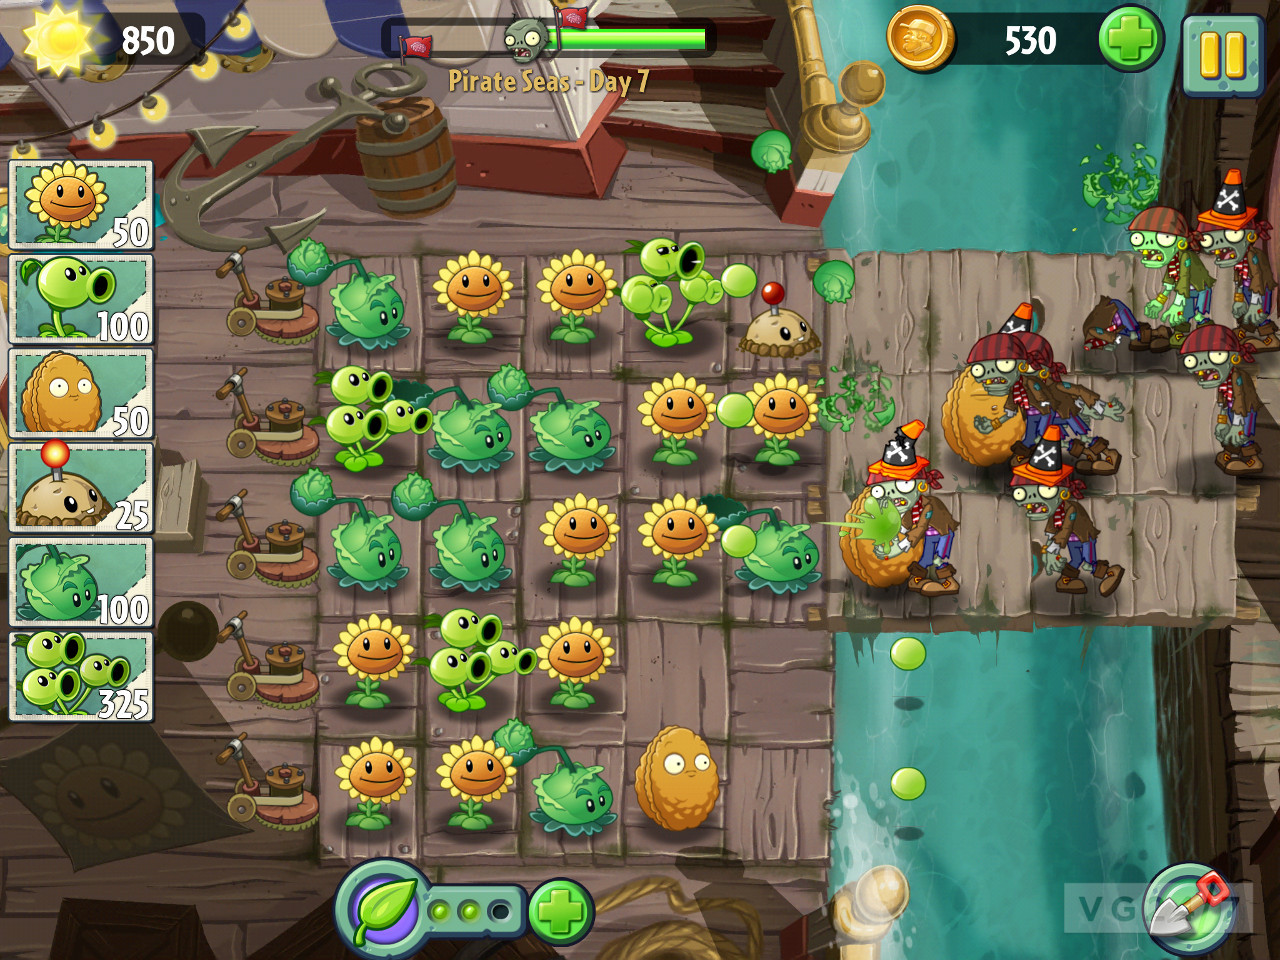 Plants vs Zombies 2 Creeps into Australia and New Zealand Stores